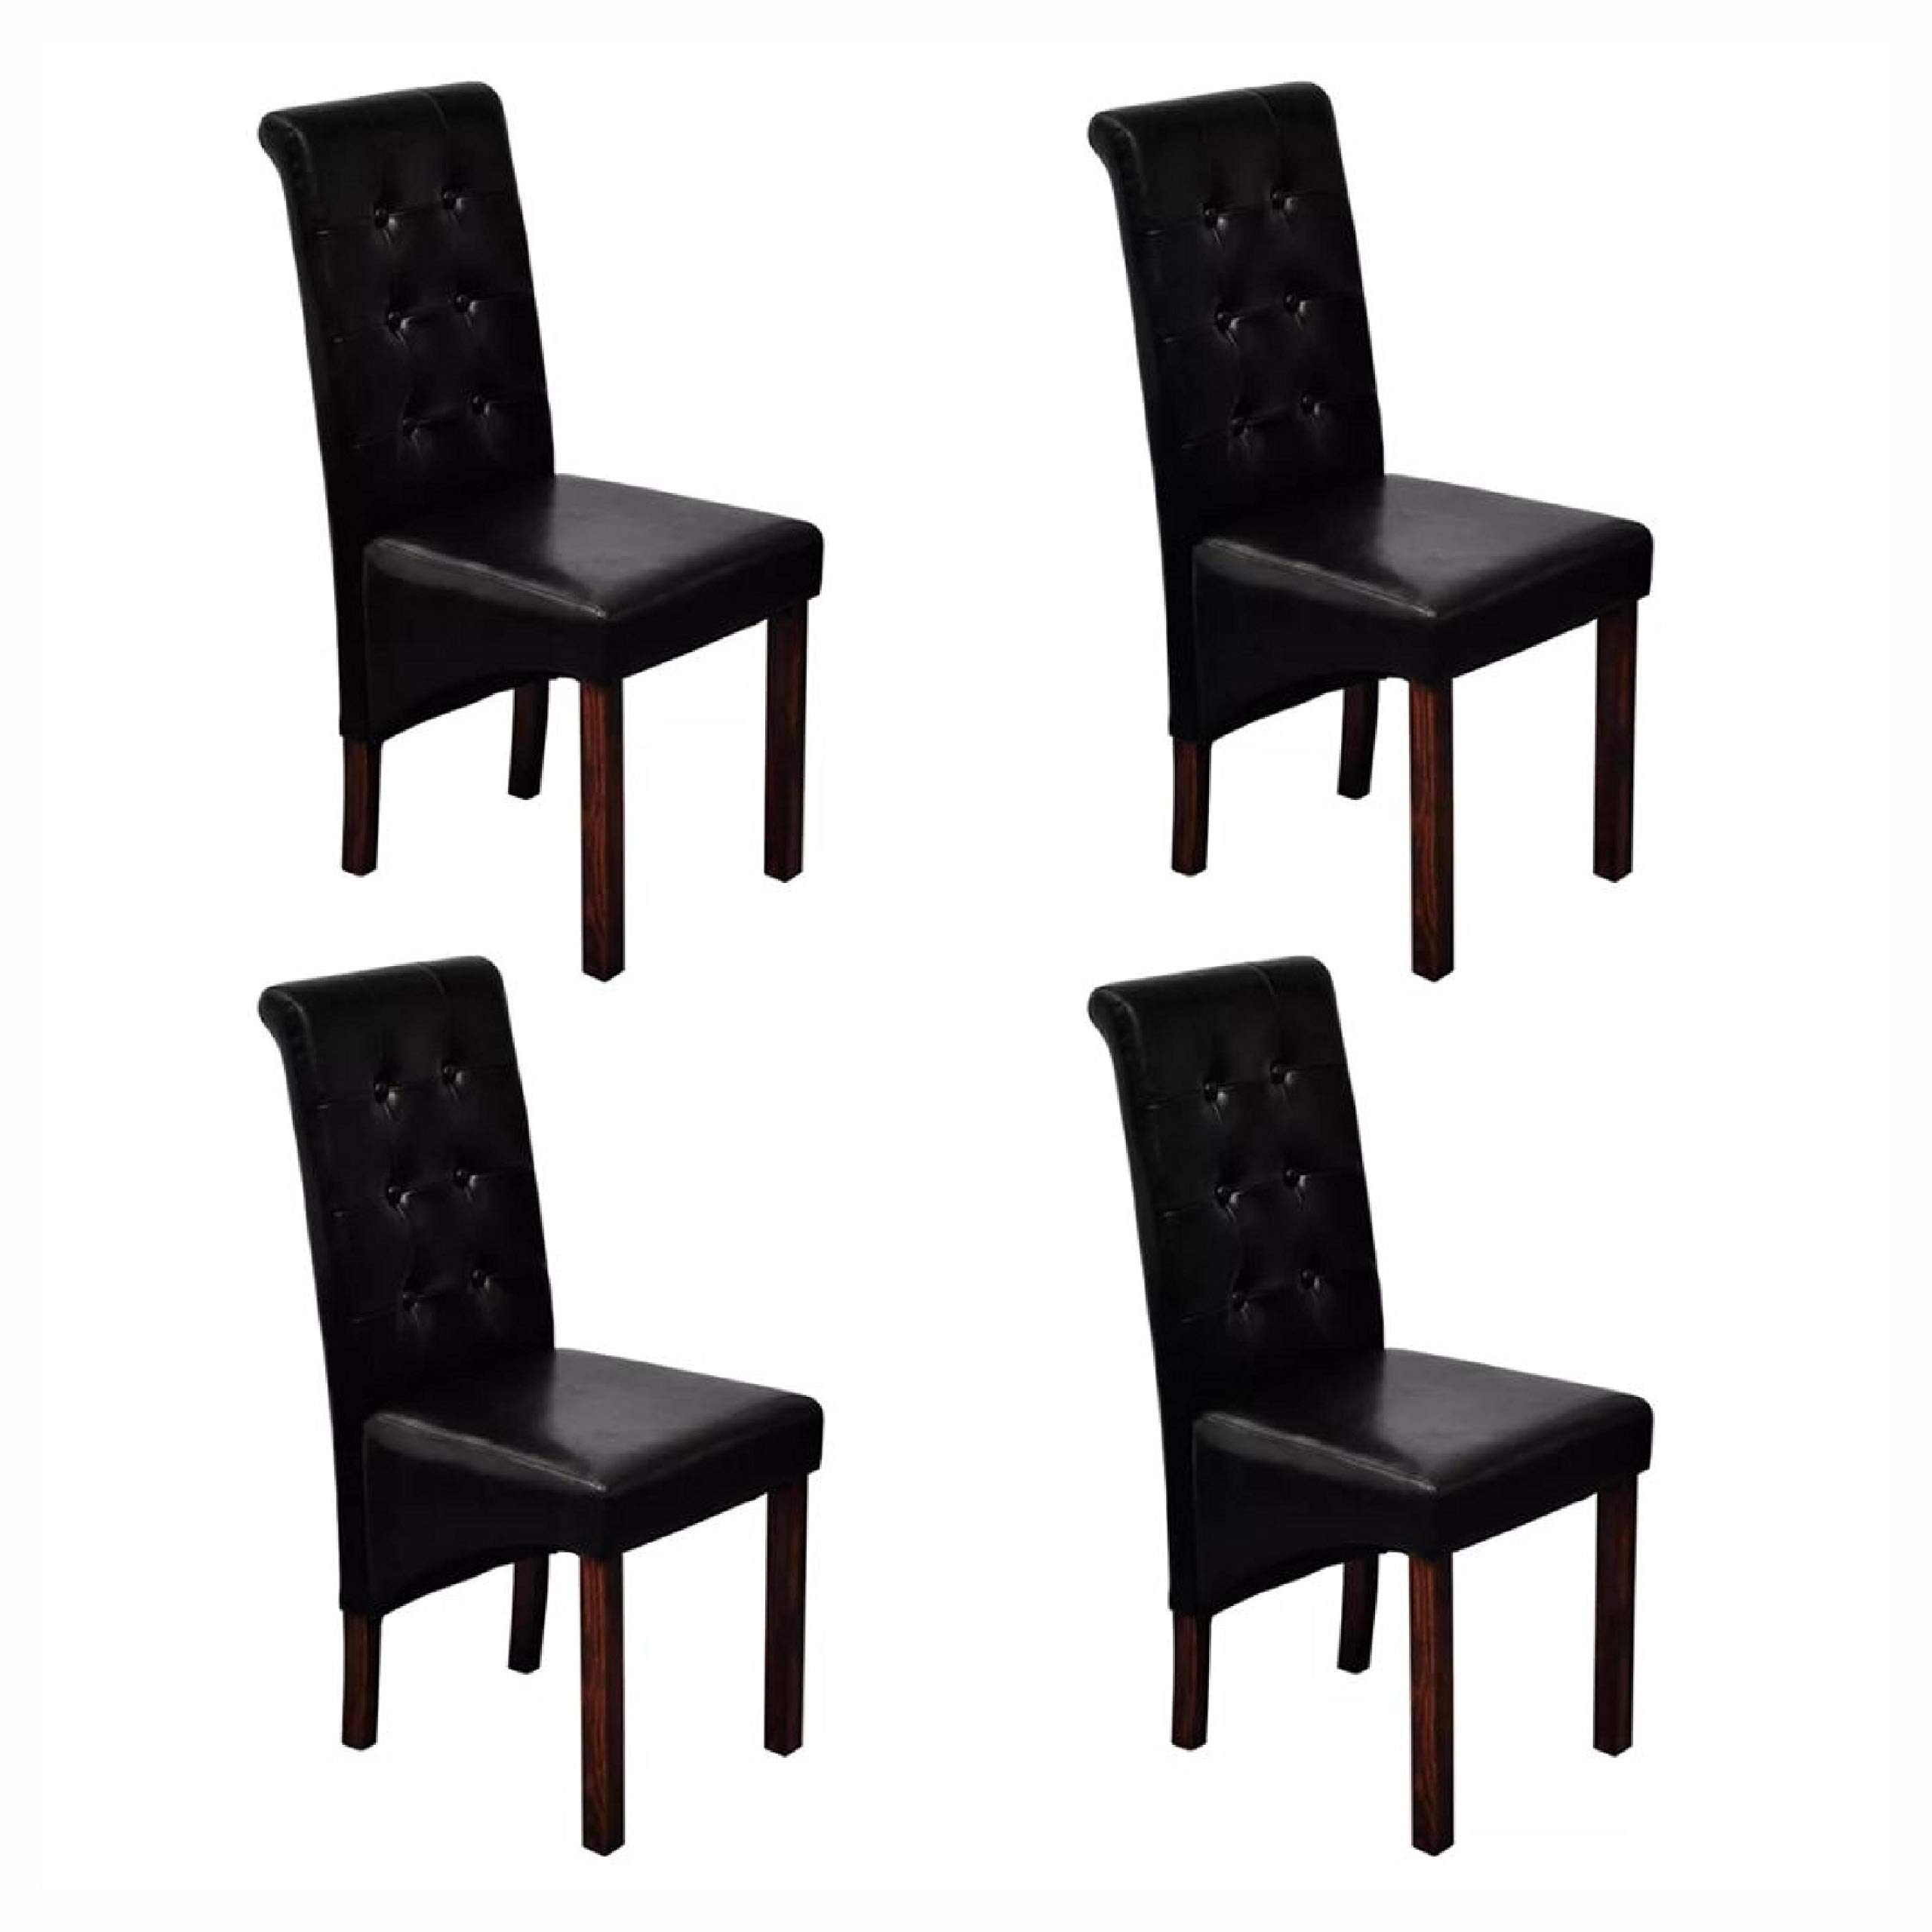 HomyDelight Kitchen & Dining Room Chair, 4 Scroll Back Artificial Leather Wooden Dining Chairs Black by HomyDelight